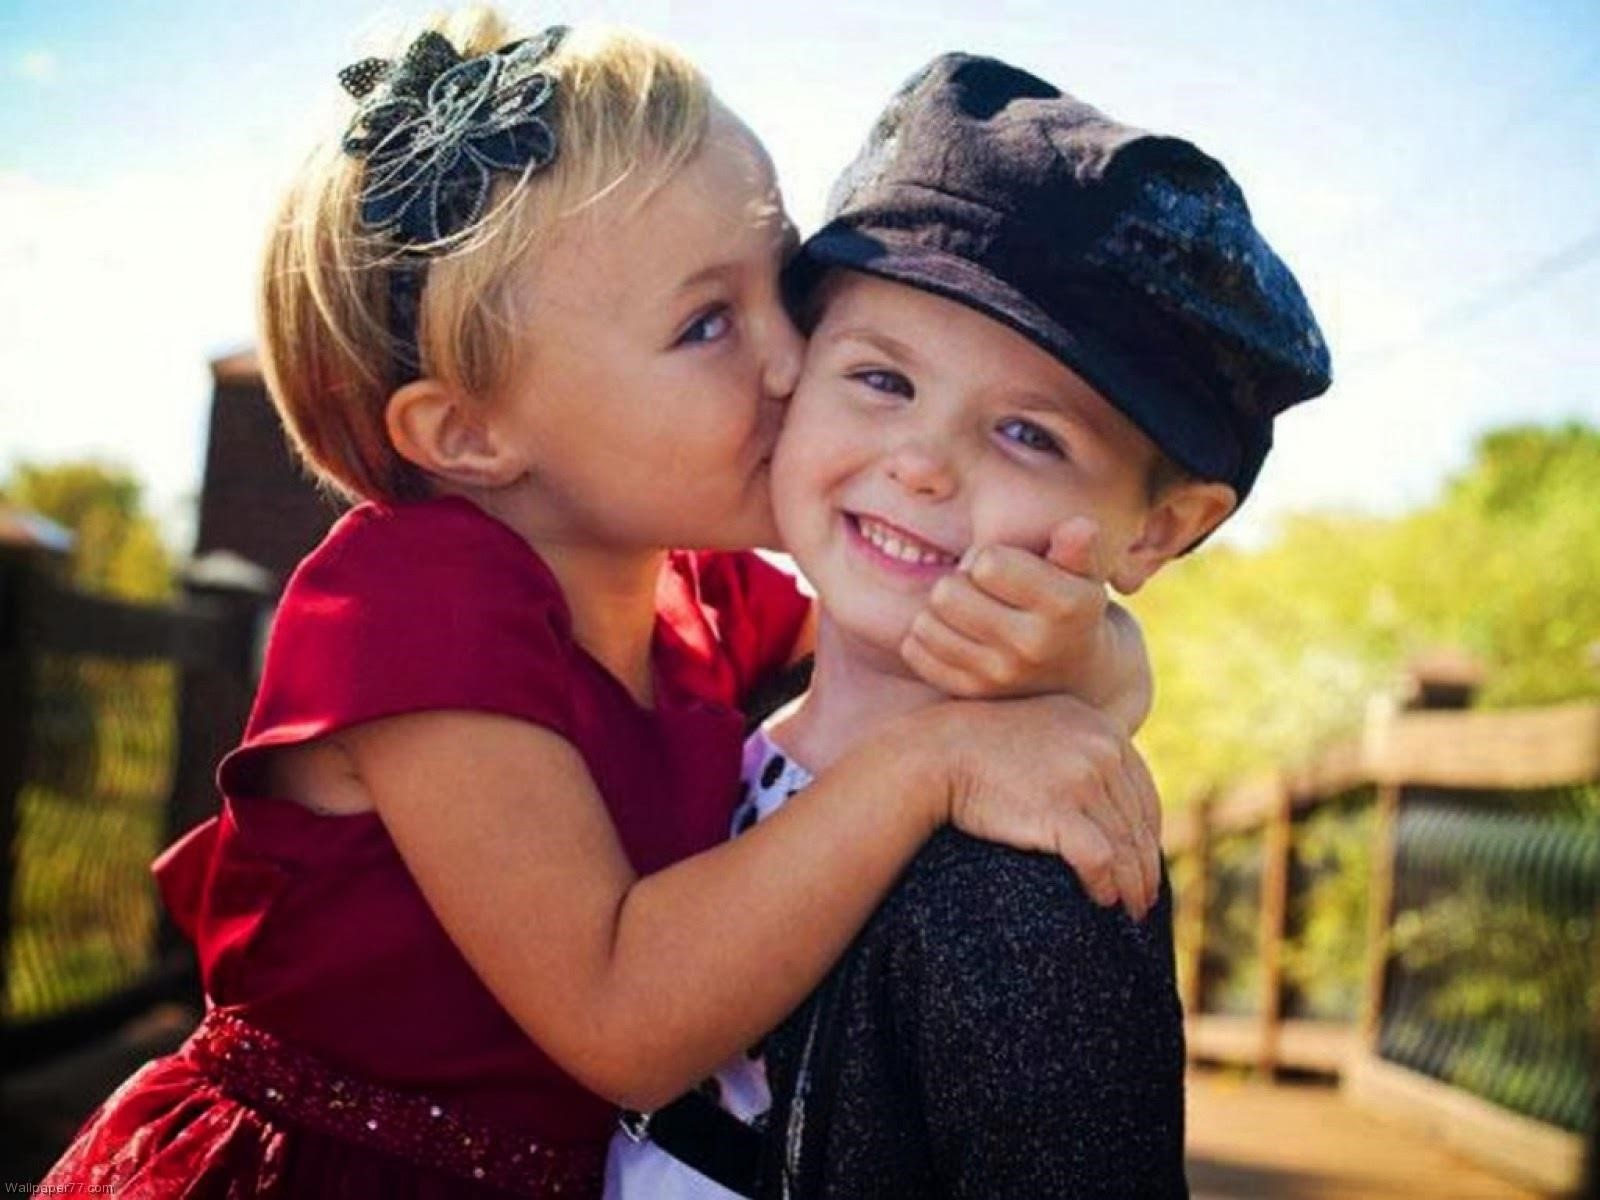 Animals Hd Wallpapers 2015 Funny Kissing Hugging Baby: Cute Child Couple Wallpaper